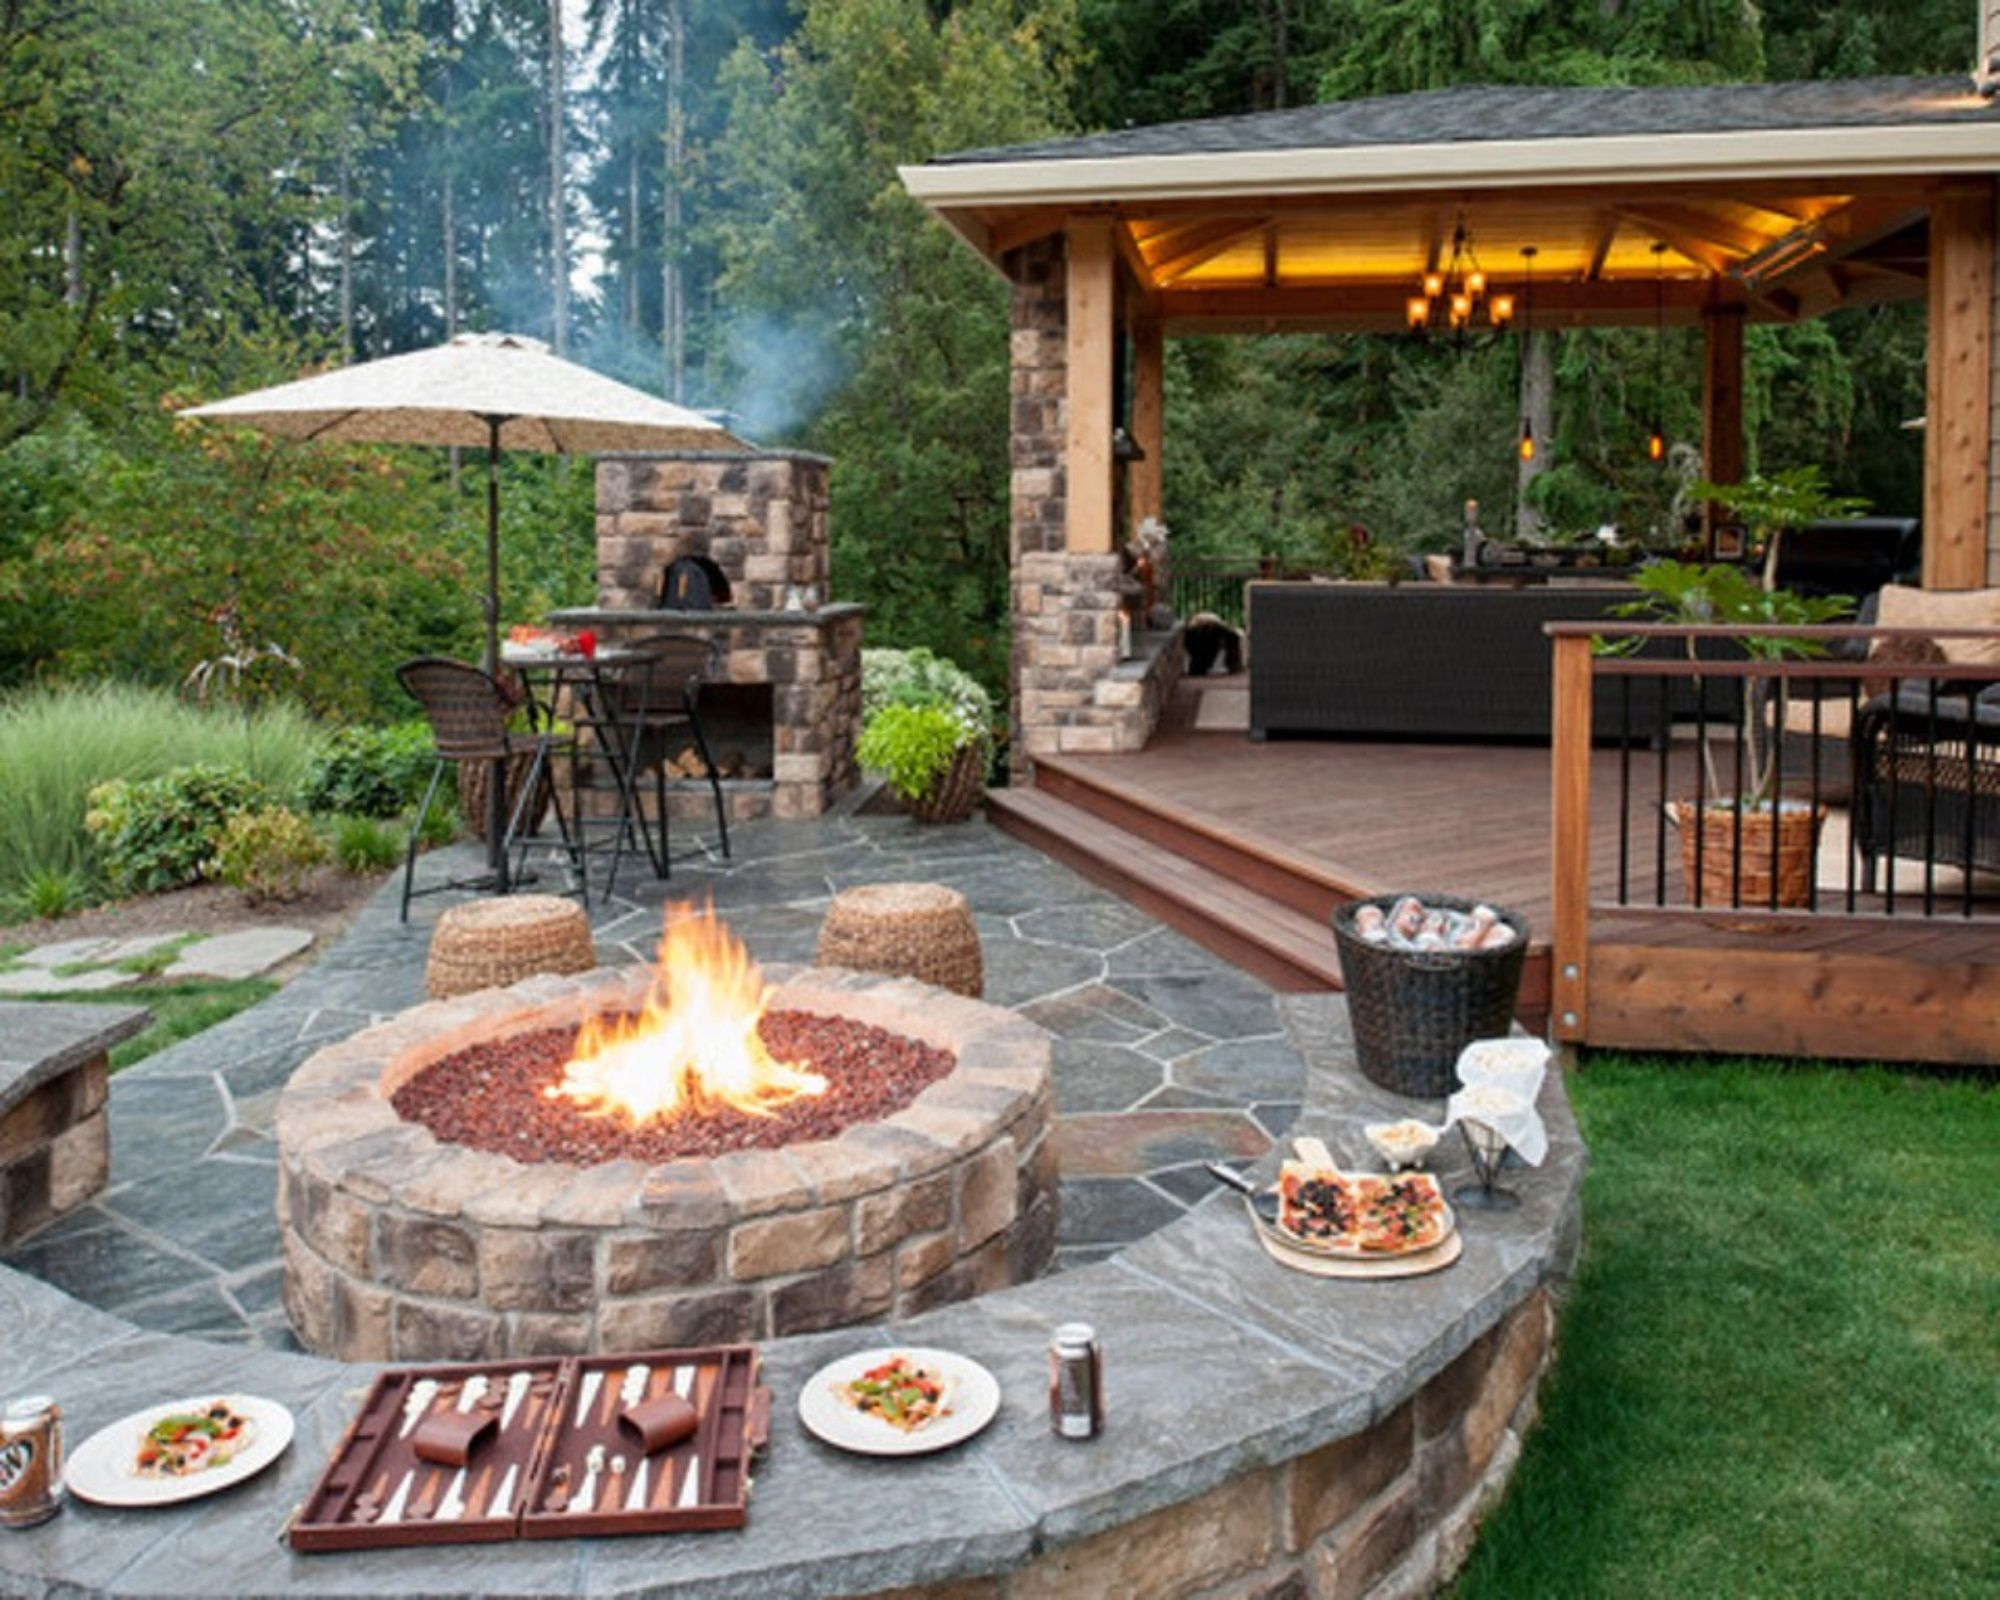 outdoor kitchen patio designs outdoor fire pit patio designs patio - Pinterest Small Patio Ideas